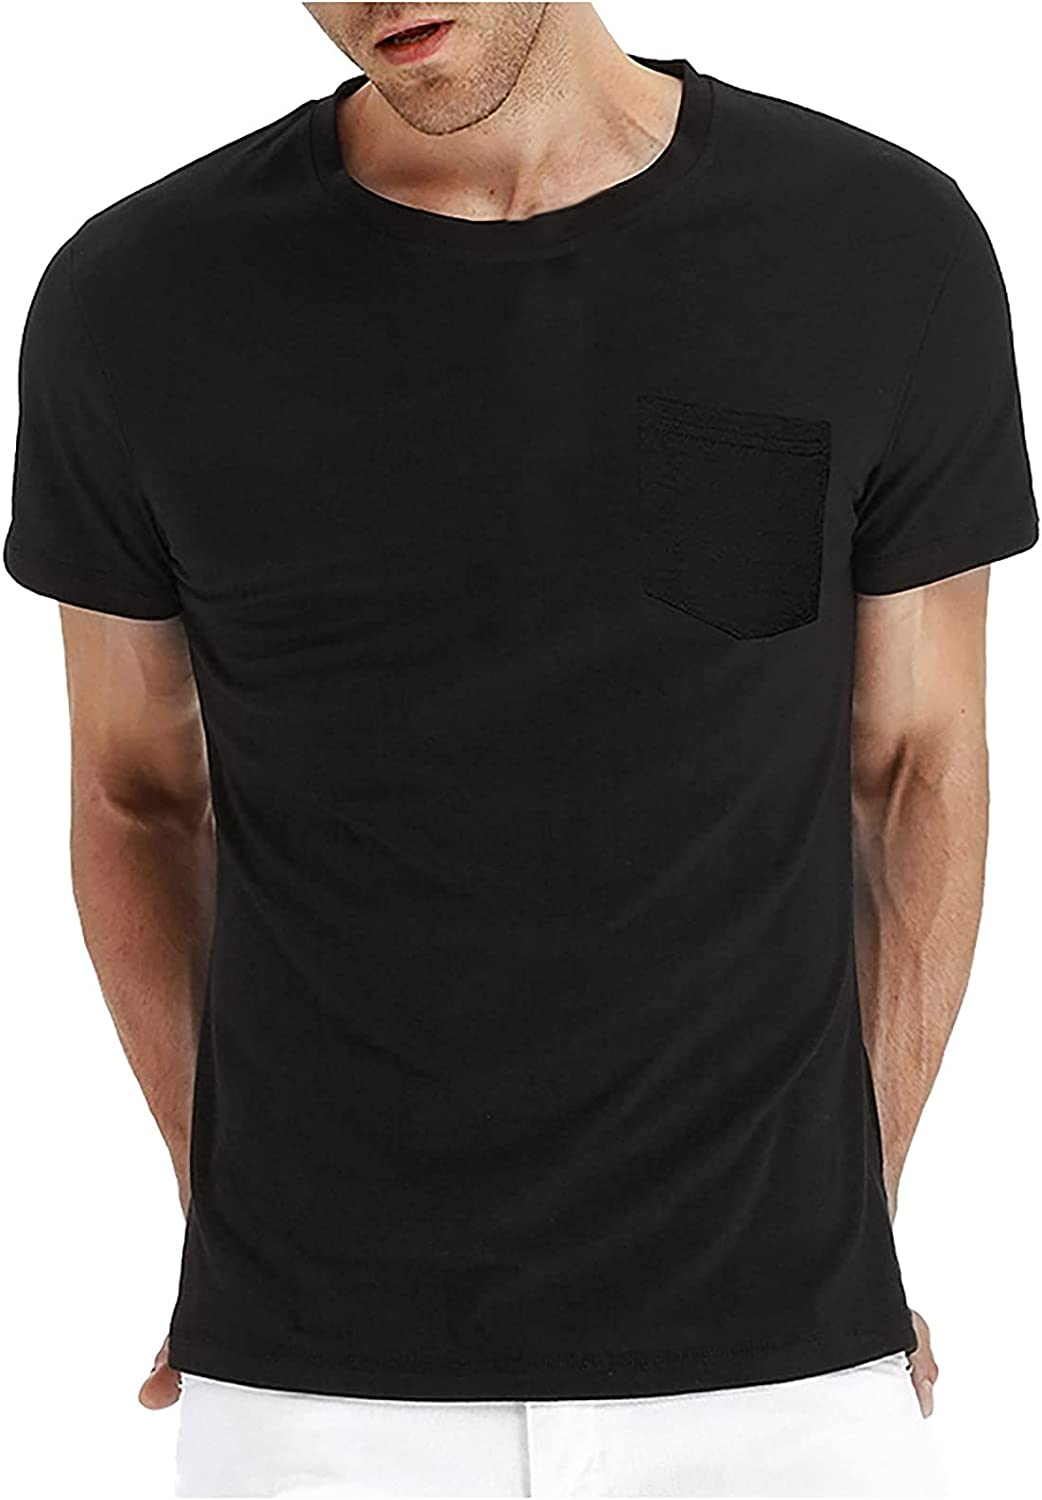 Huangse Mens T Shirts Casual Athletic Fit Workout Slim Fit Muscle Gym Fitness Short Sleeve Tee Shirt Tops